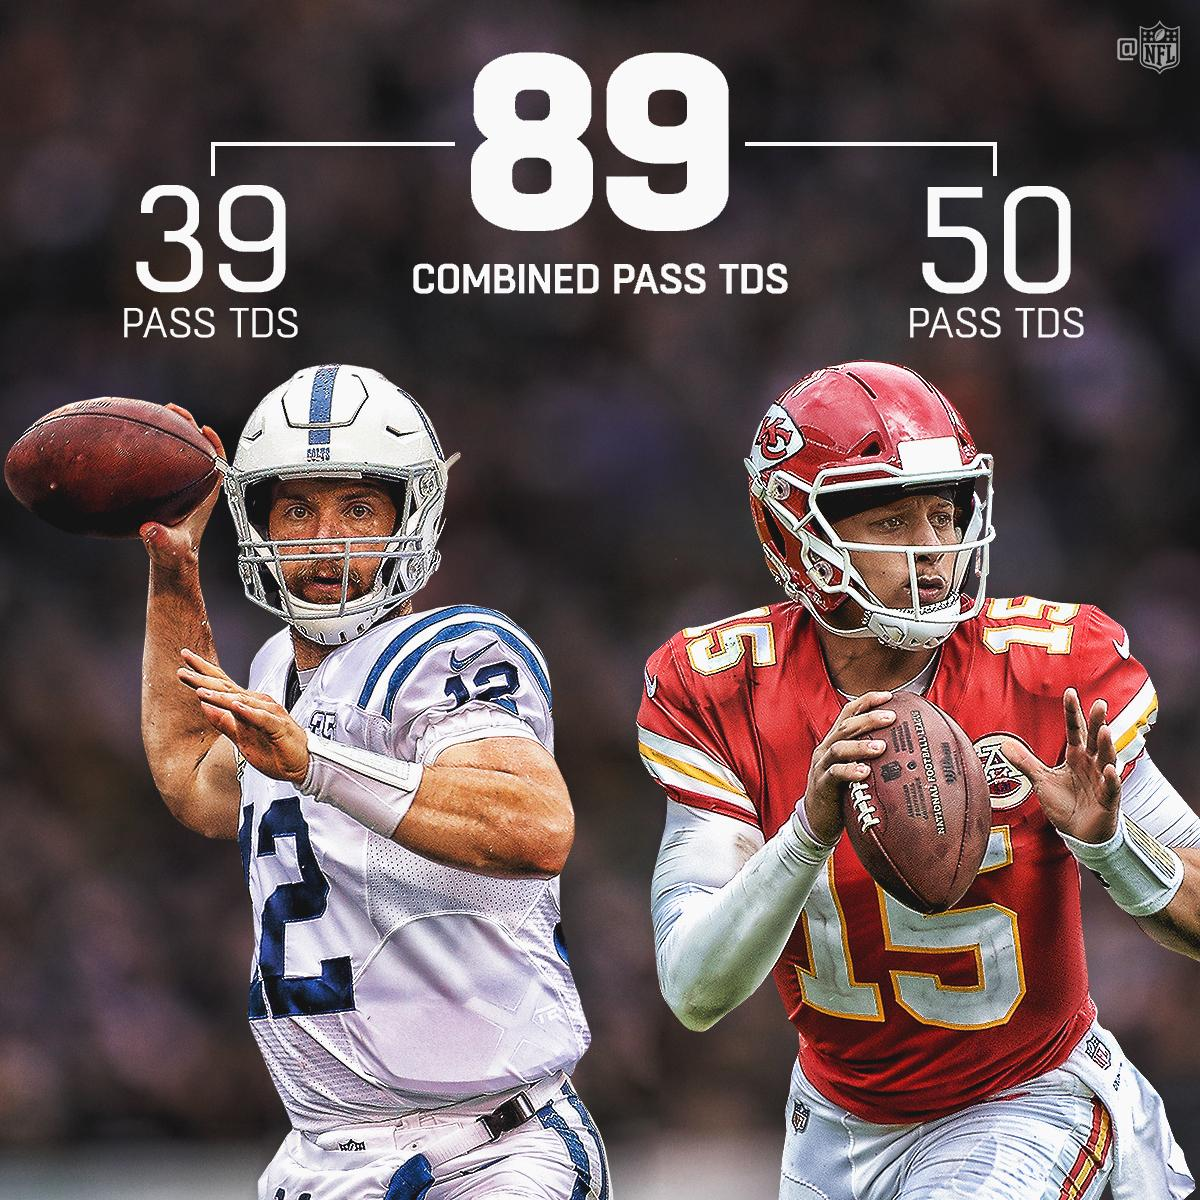 The most combined regular season TD passes to face off in the postseason. Ever. �� #NFLPlayoffs https://t.co/Ot3IAdU5sI